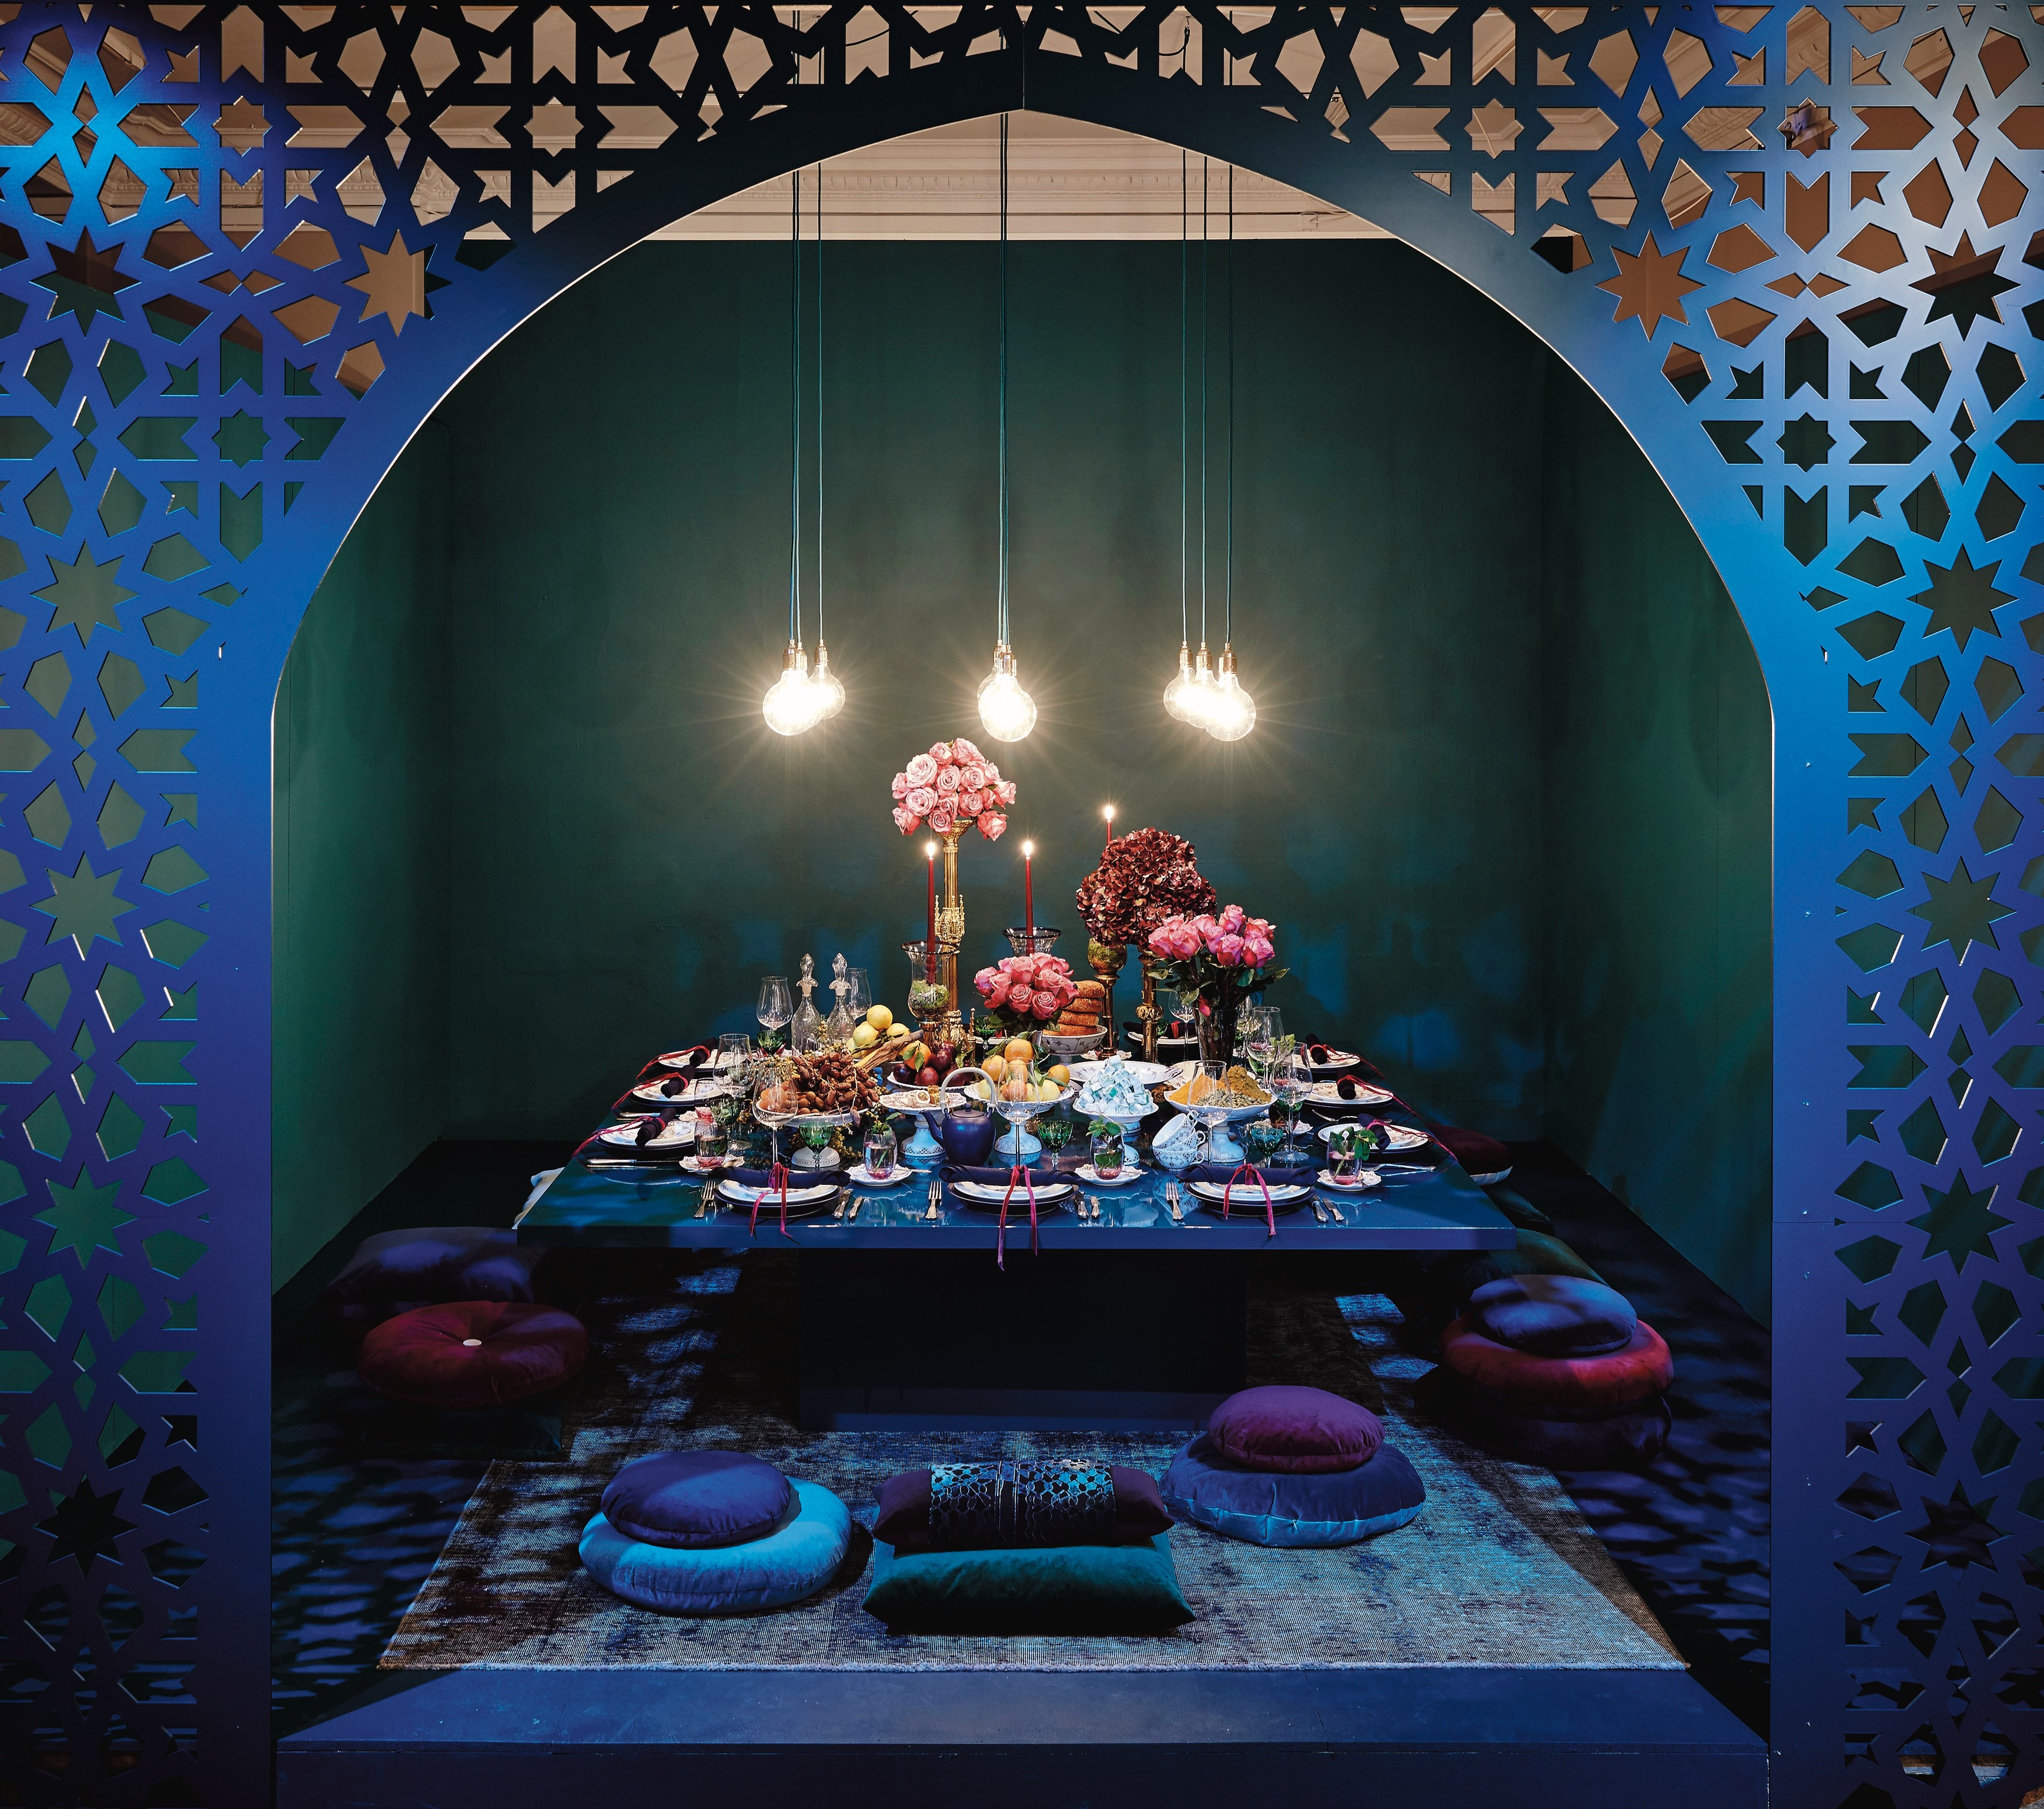 fashionable Christmas - a Middle Eastern-inspired table by Leyla Piedayesh combines midnight colors with lush displays of flowers and plates of fruit using Blue Fluted and Half Lace Purpur china on a low table behind a Moorish-style screen - Royal Copenhagen via Atticmag